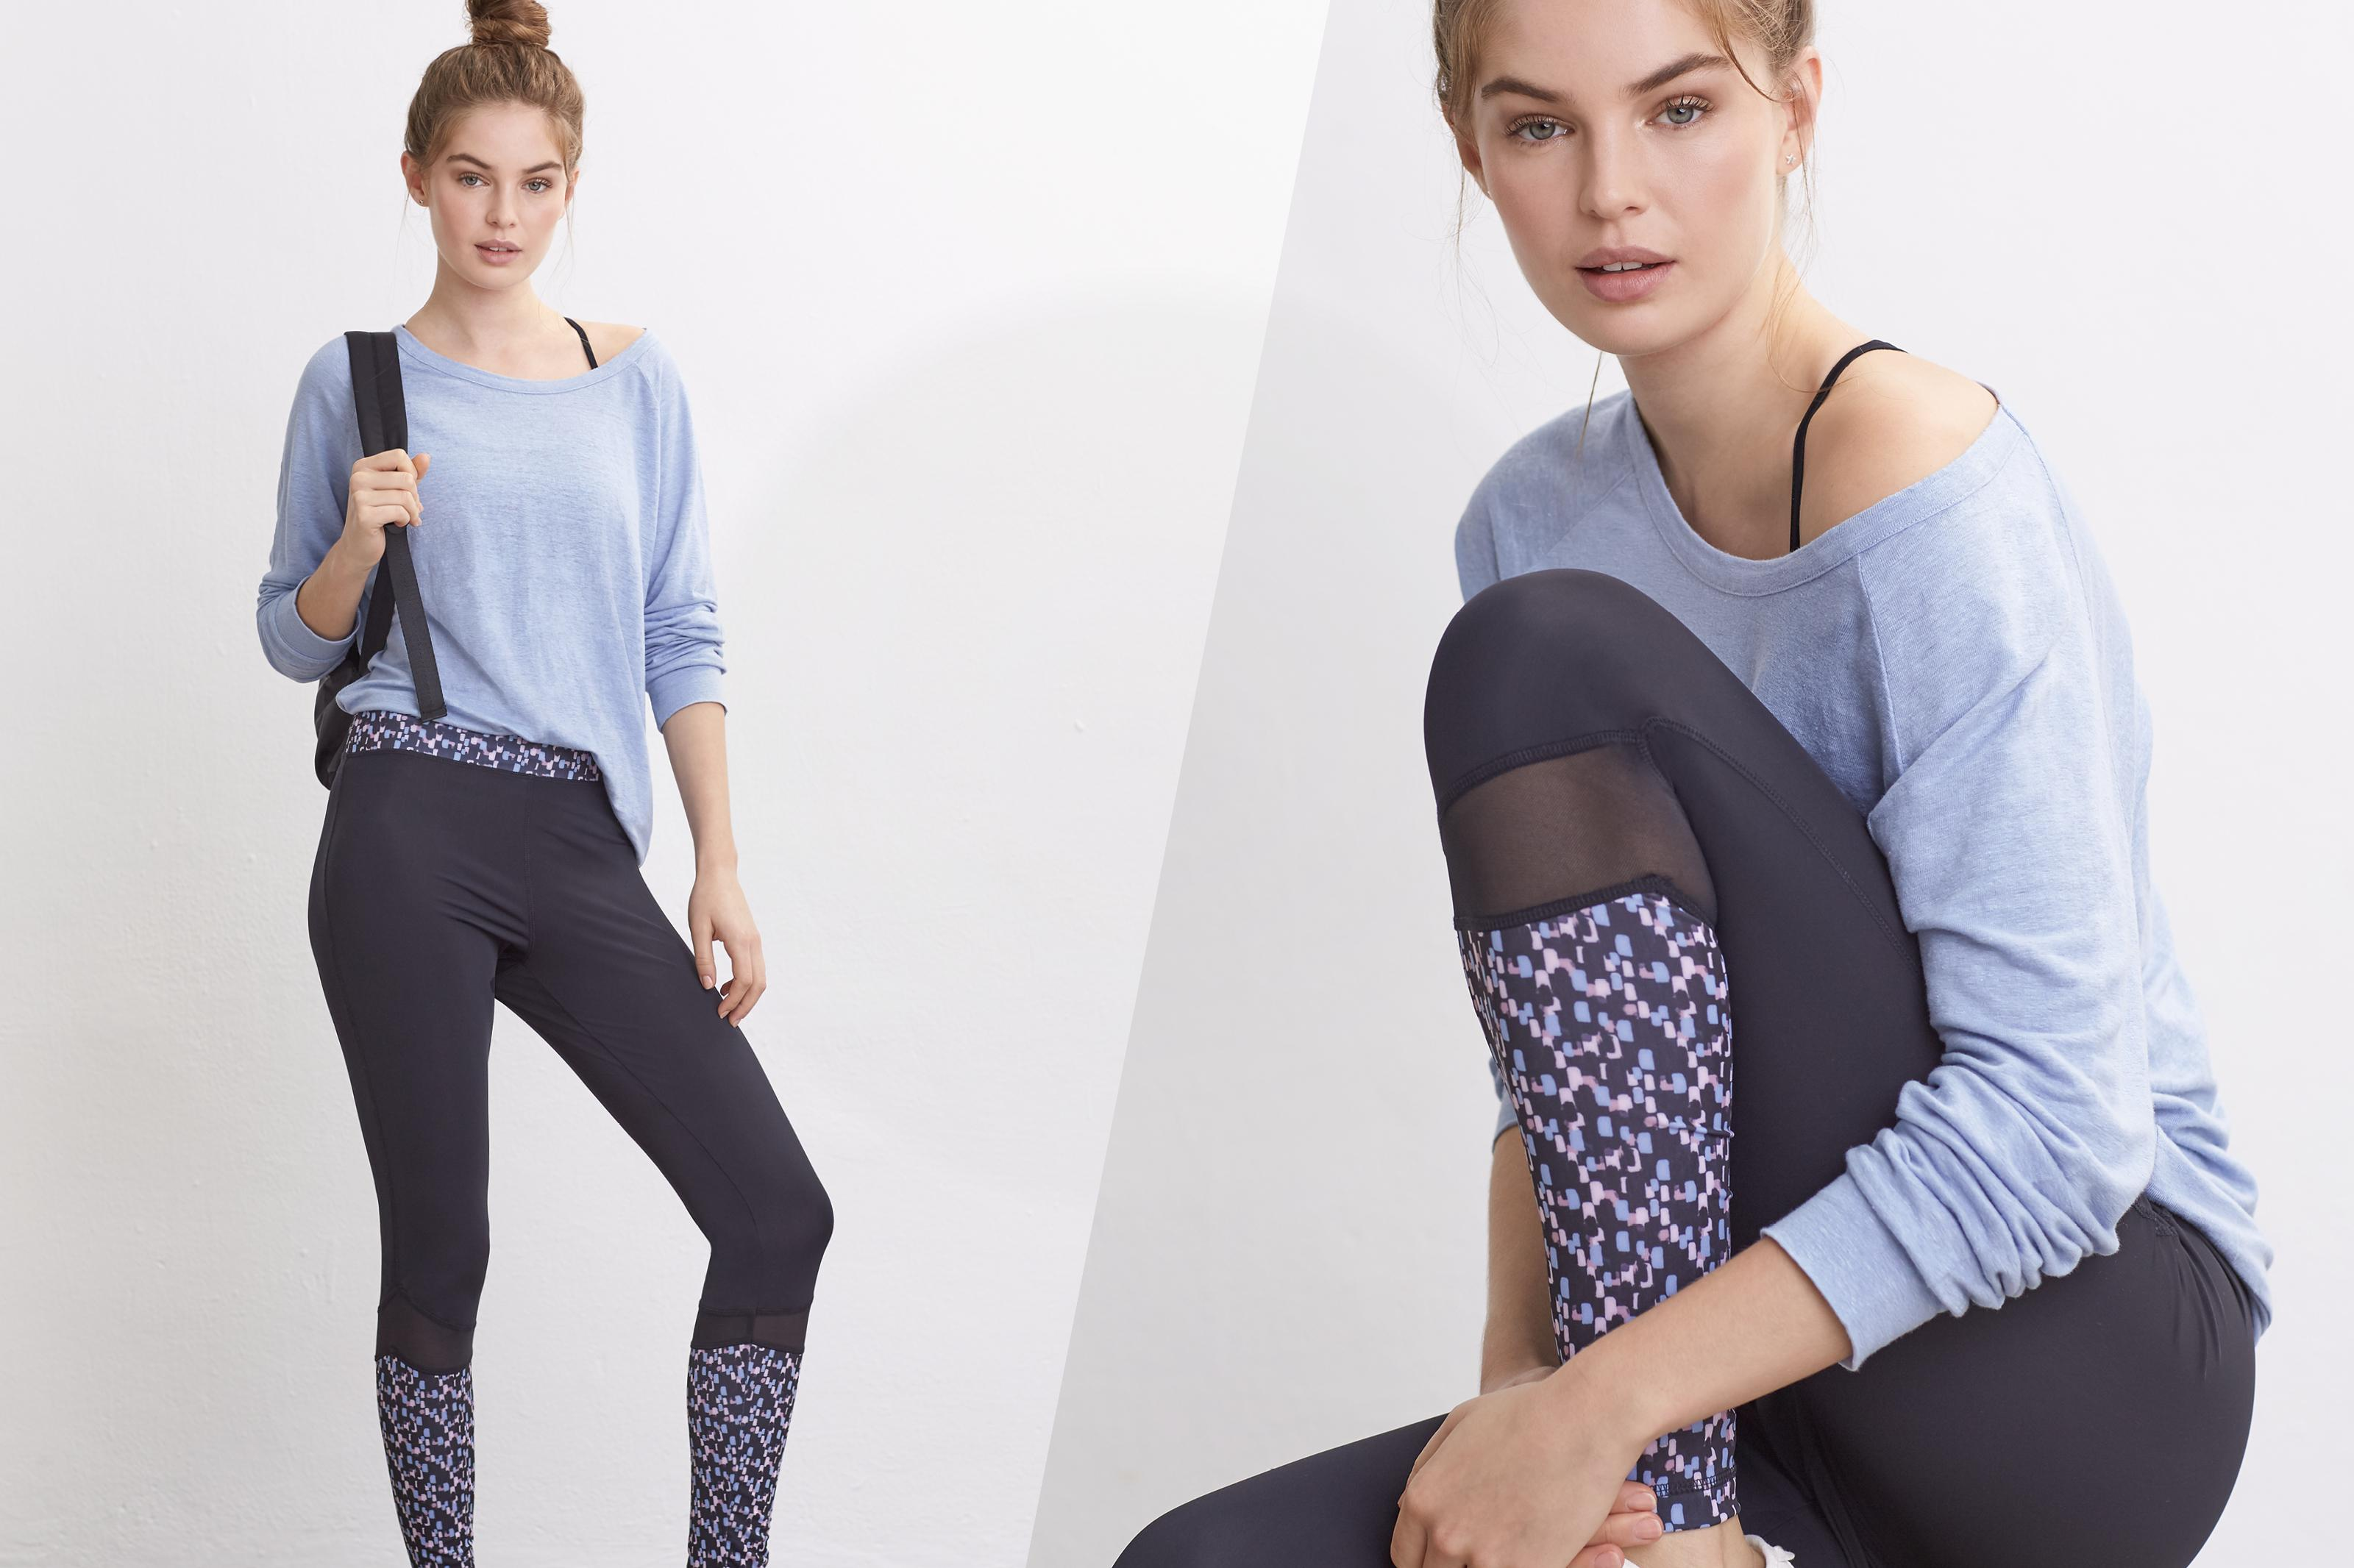 Two images of a female model wearing a light blue yoga top with black patterned gym leggings. One is of her standing and one sat down.